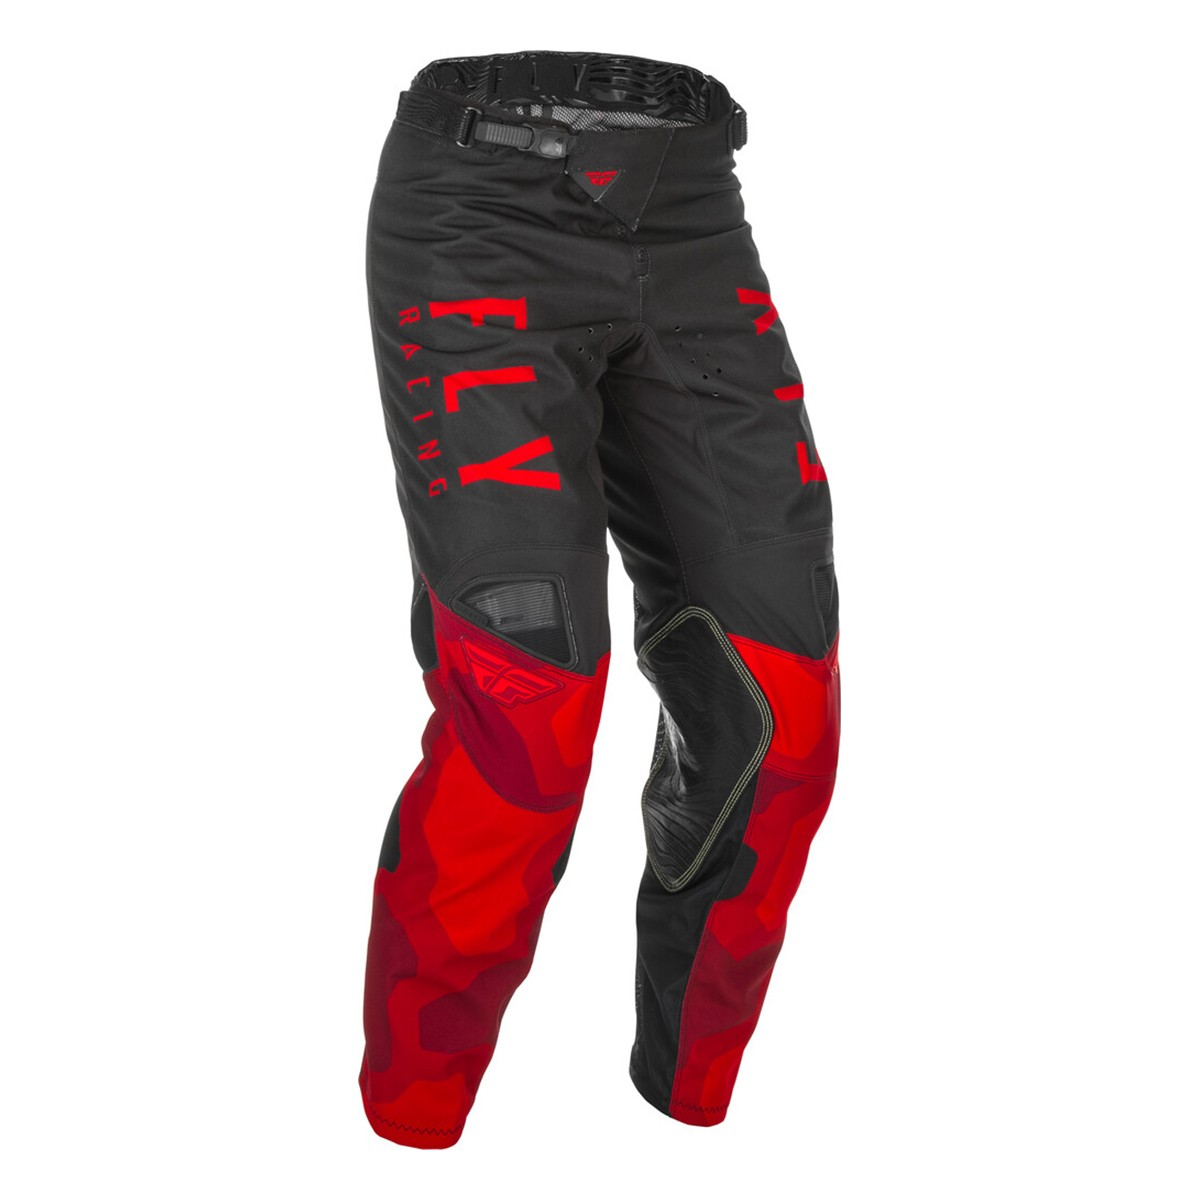 FLY YOUTH KINETIC K221 2021 PANTS